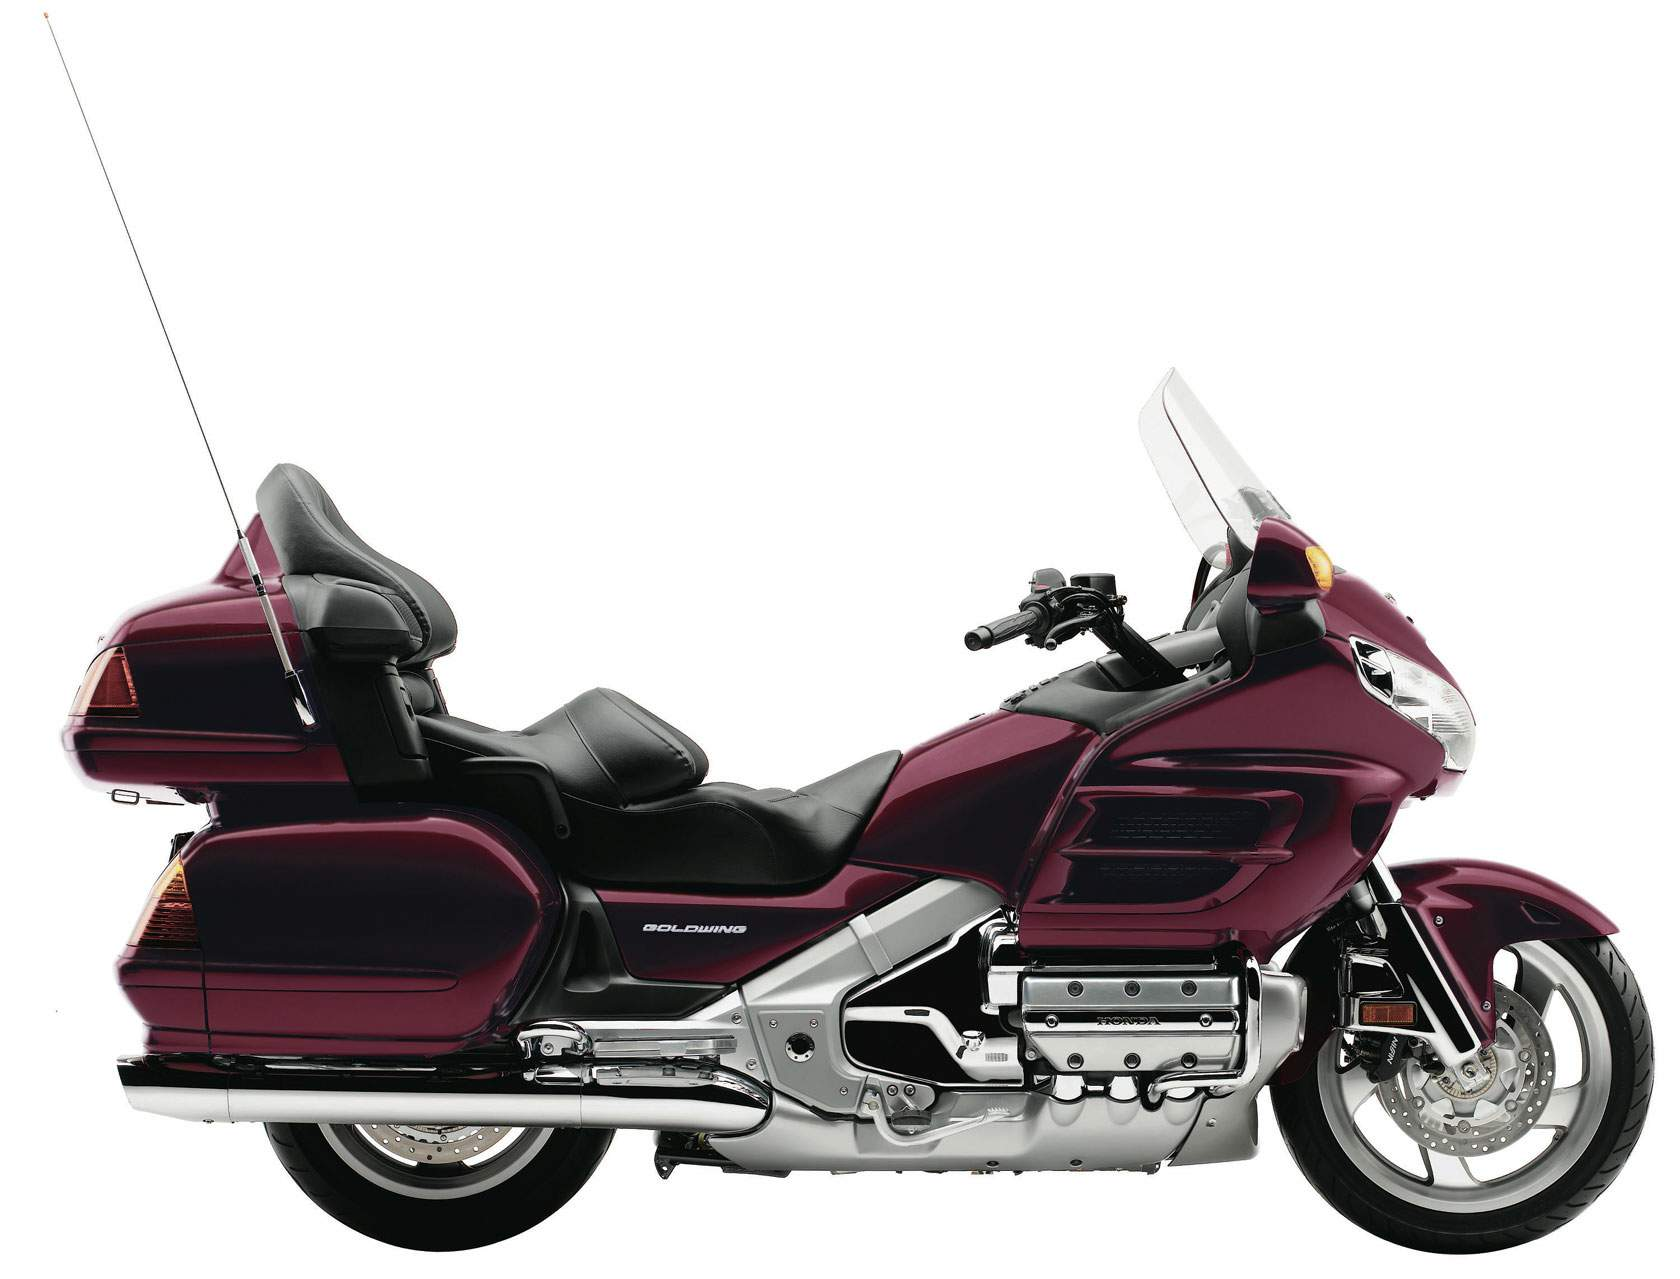 Мотоцикл Honda GLX 1800 Gold Wing 30th Anniversary 2005